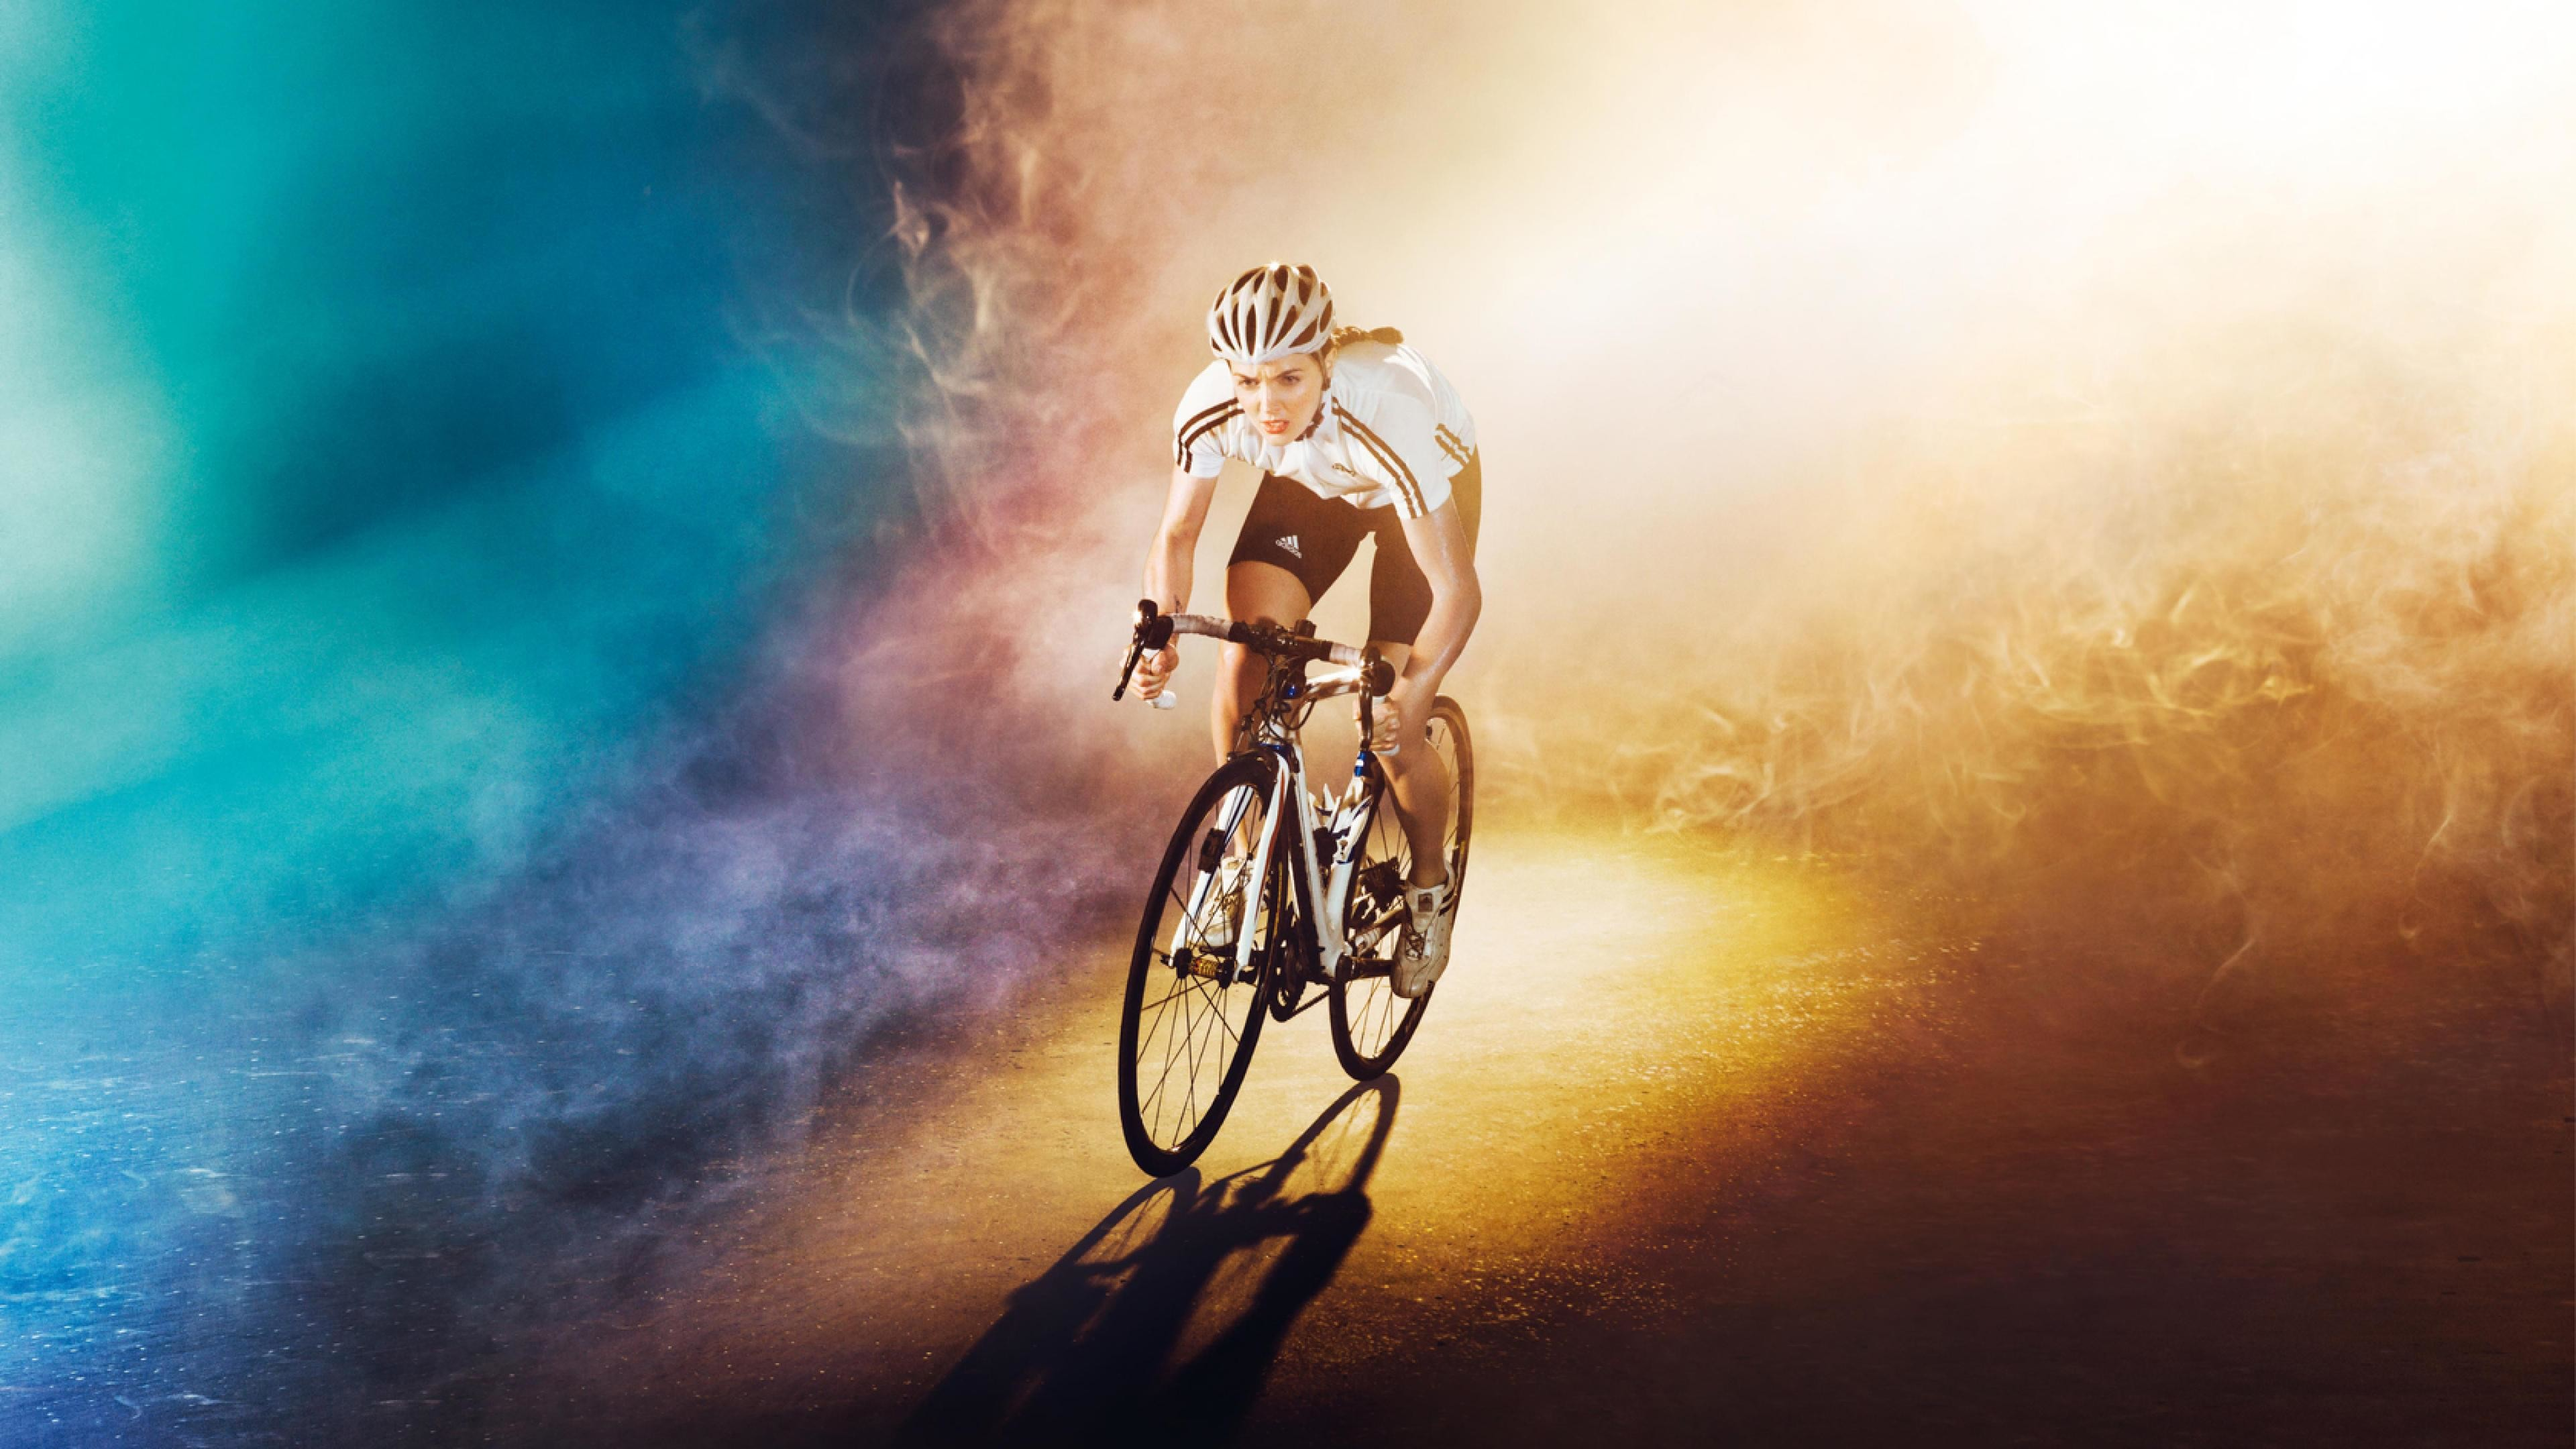 olympiad_bike_bicycle_girl_road_color_light_ultra-HD Wallpapers